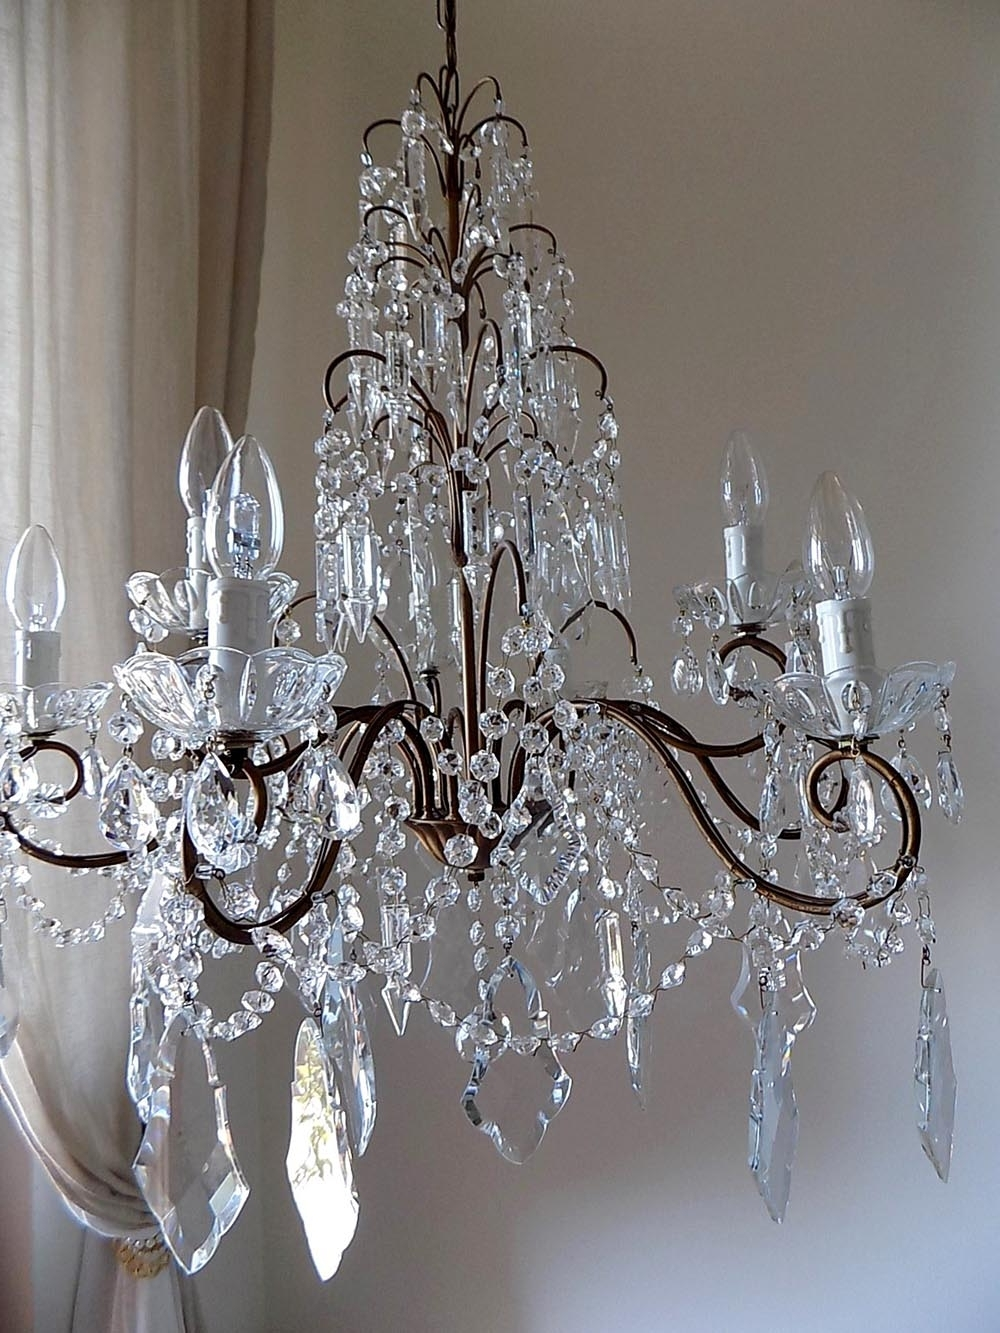 Italian Crystal Chandeliers Antique – Chandelier Designs Regarding Widely Used Vintage Italian Chandeliers (View 6 of 20)